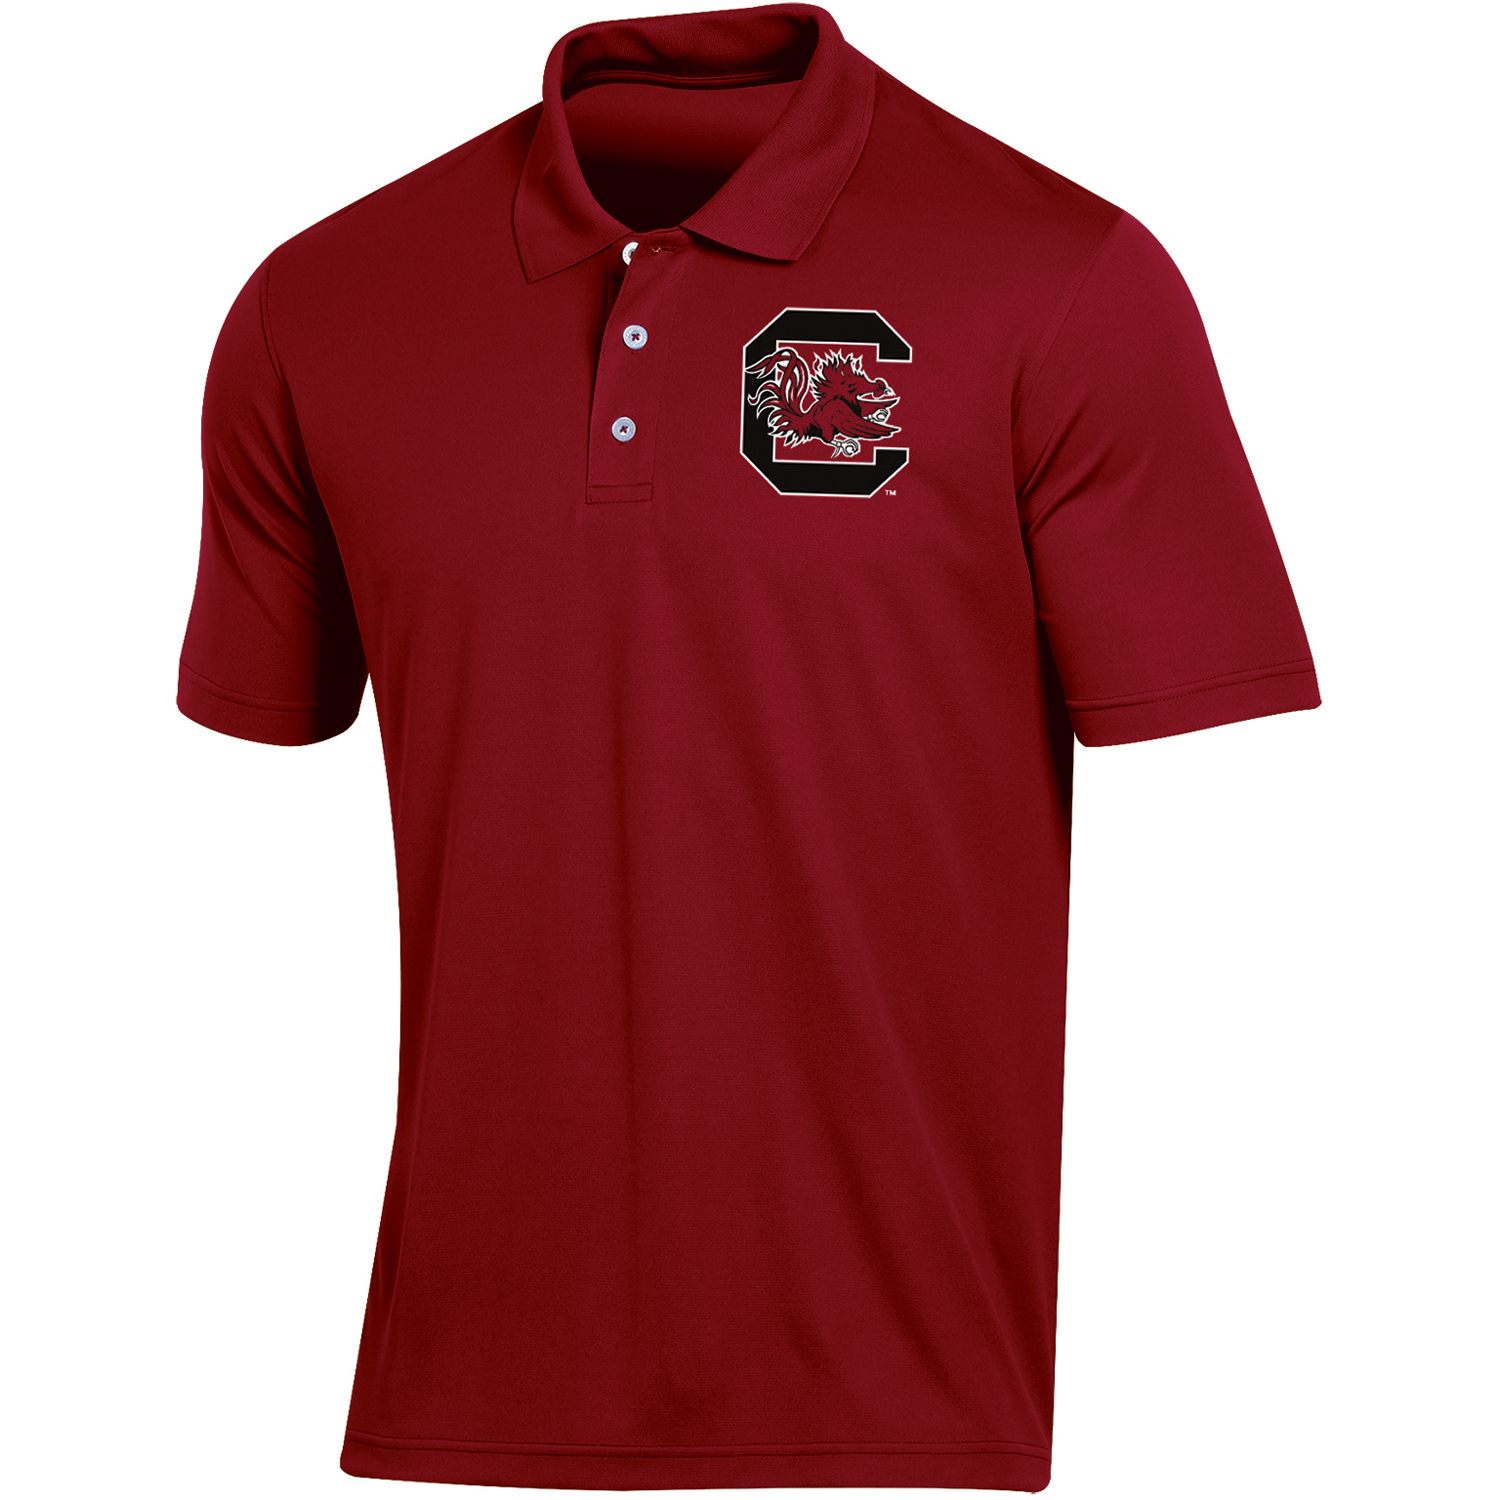 Men's Russell Garnet South Carolina Gamecocks Classic Fit Synthetic Polo